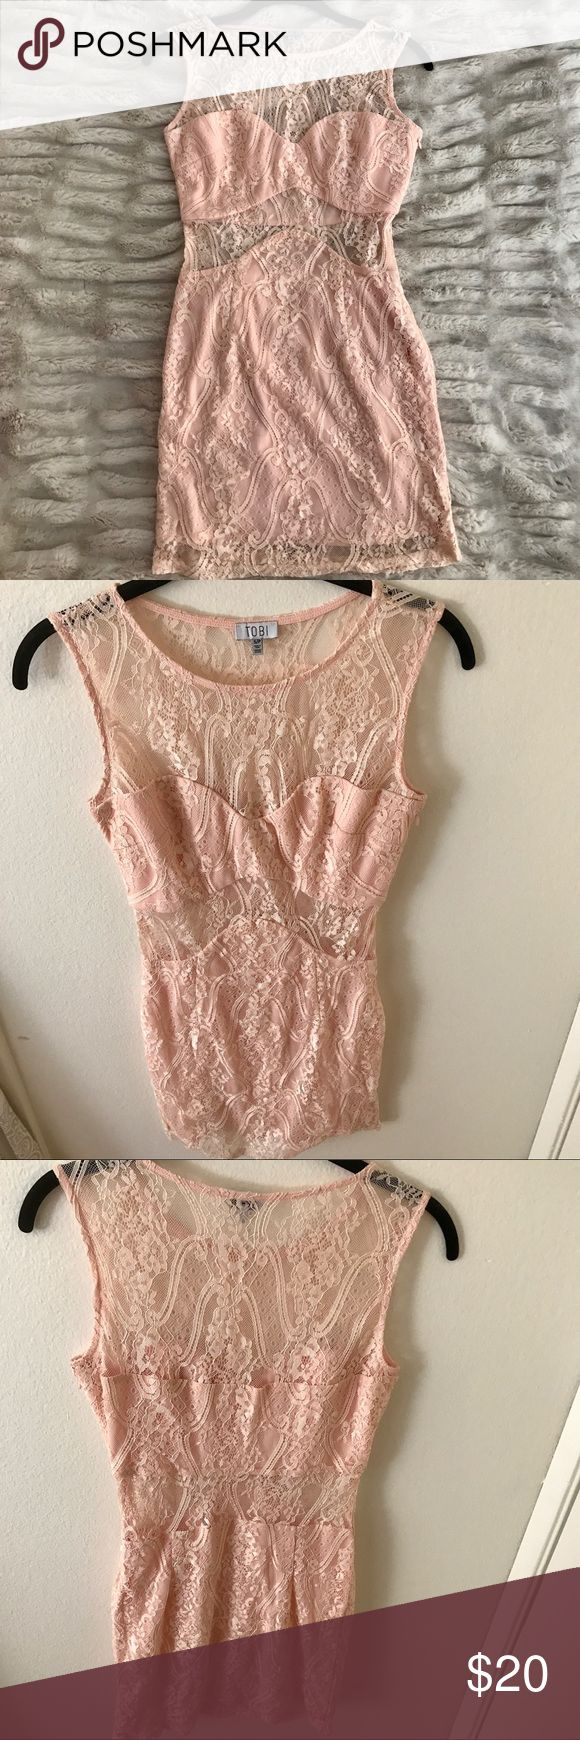 Tobi Light Pink Lace Cutout Bodycon Dress Tobi light pink lace cutout bodycon dress size Small/Petite. Lace cutout around the torso and shoulders. Color is light pink with a touch of peach. Looks great with wedges or strappy heals. Perfect for nights out or Sunday brunch! Make an offer! Tobi Dresses Mini